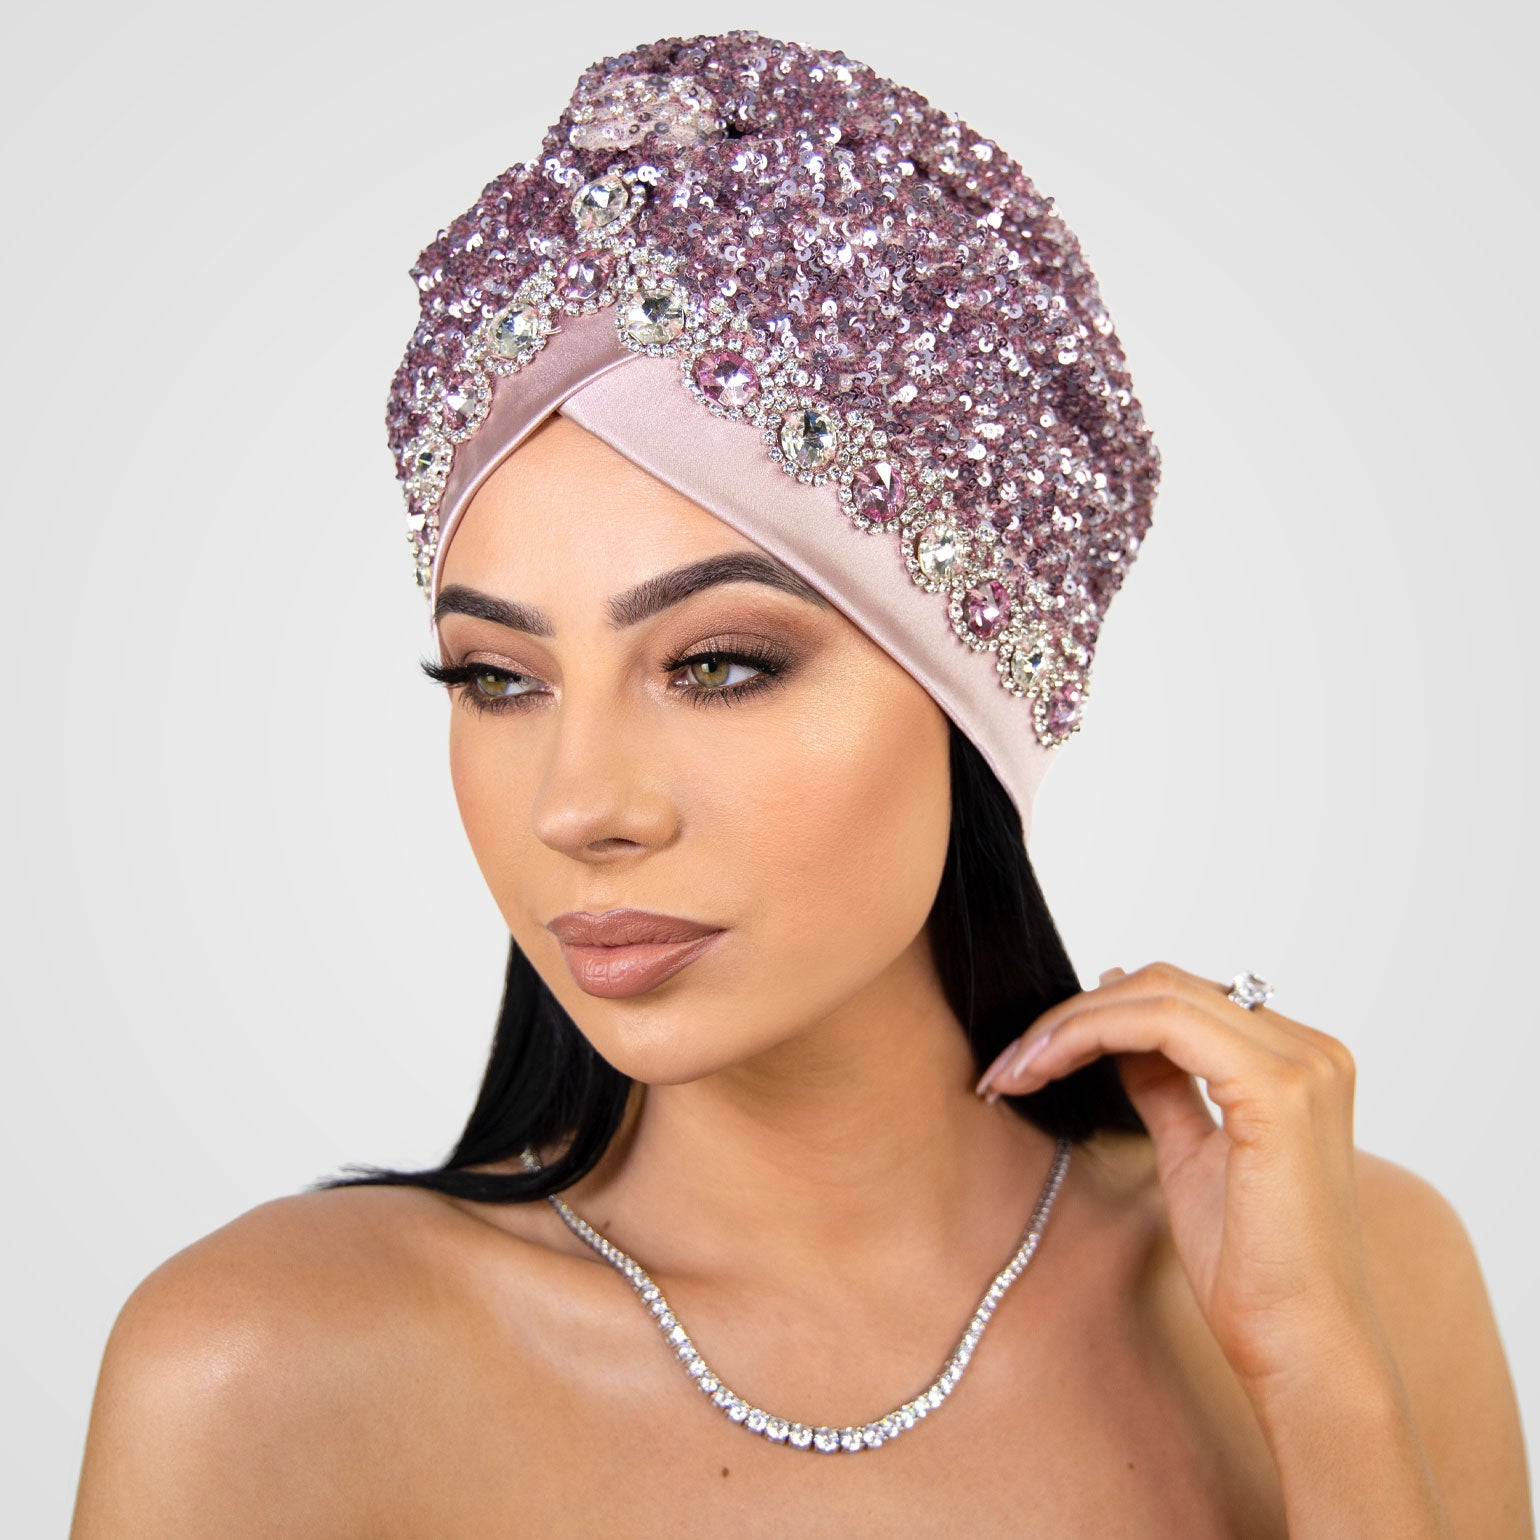 Silver Sequins And pink headpiece